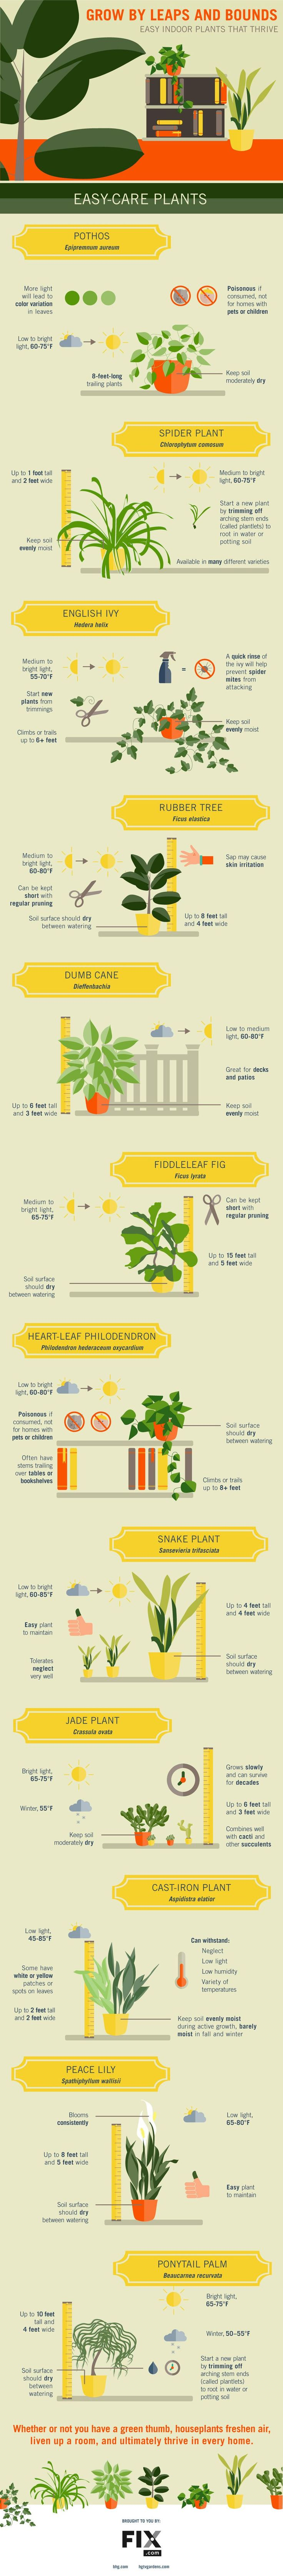 Easy Indoor Plants That Thrive by fix.com #Infographic #Houseplants